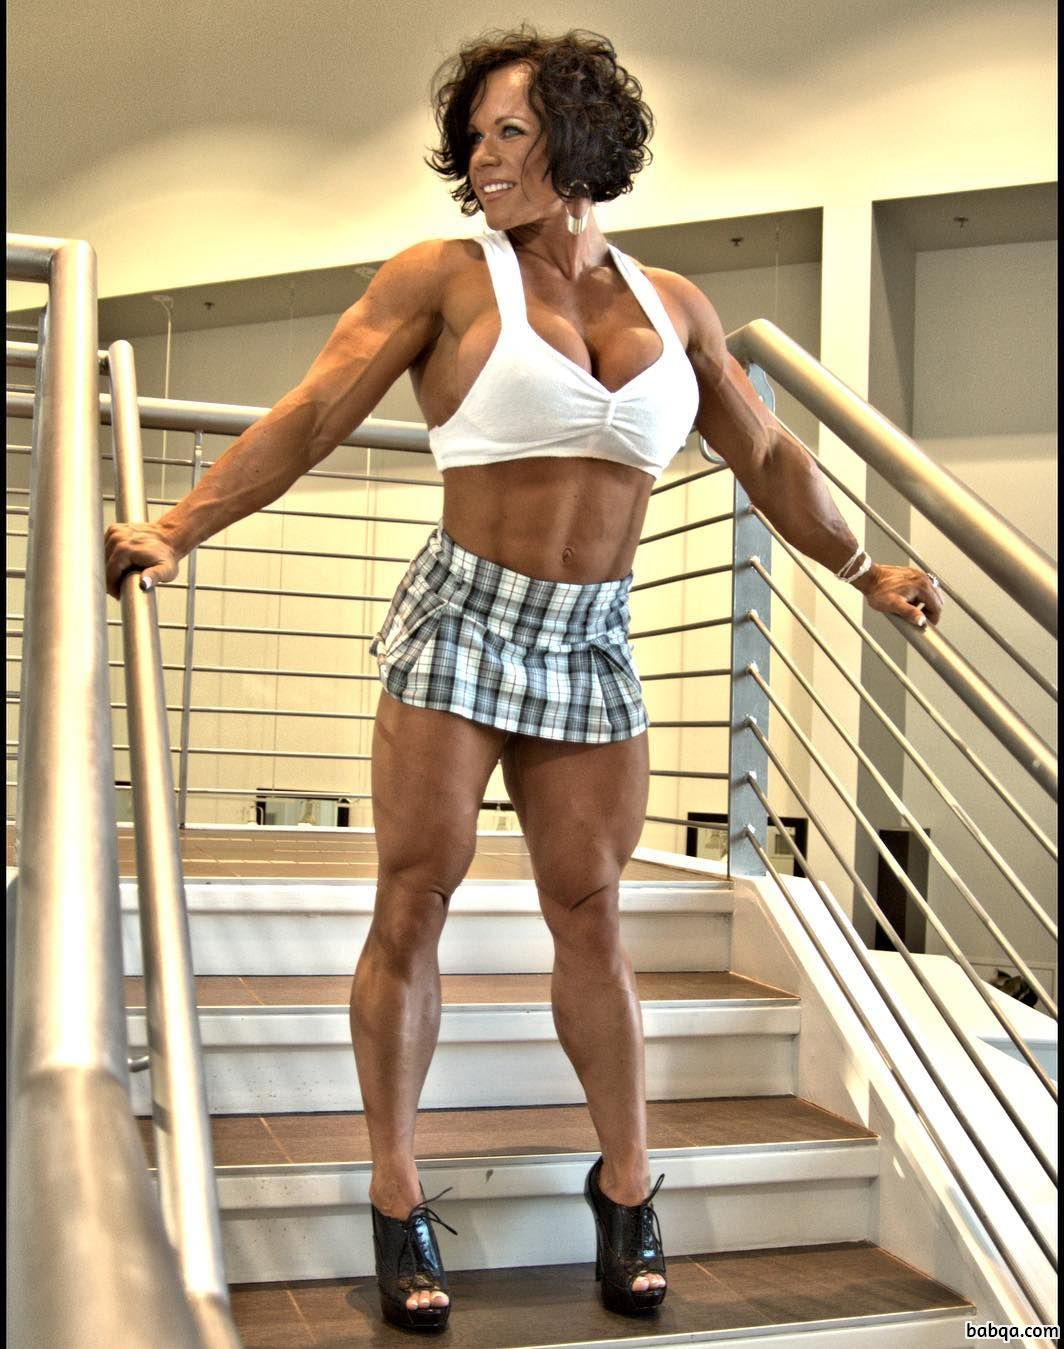 spicy woman with fitness body and muscle arms picture from tumblr